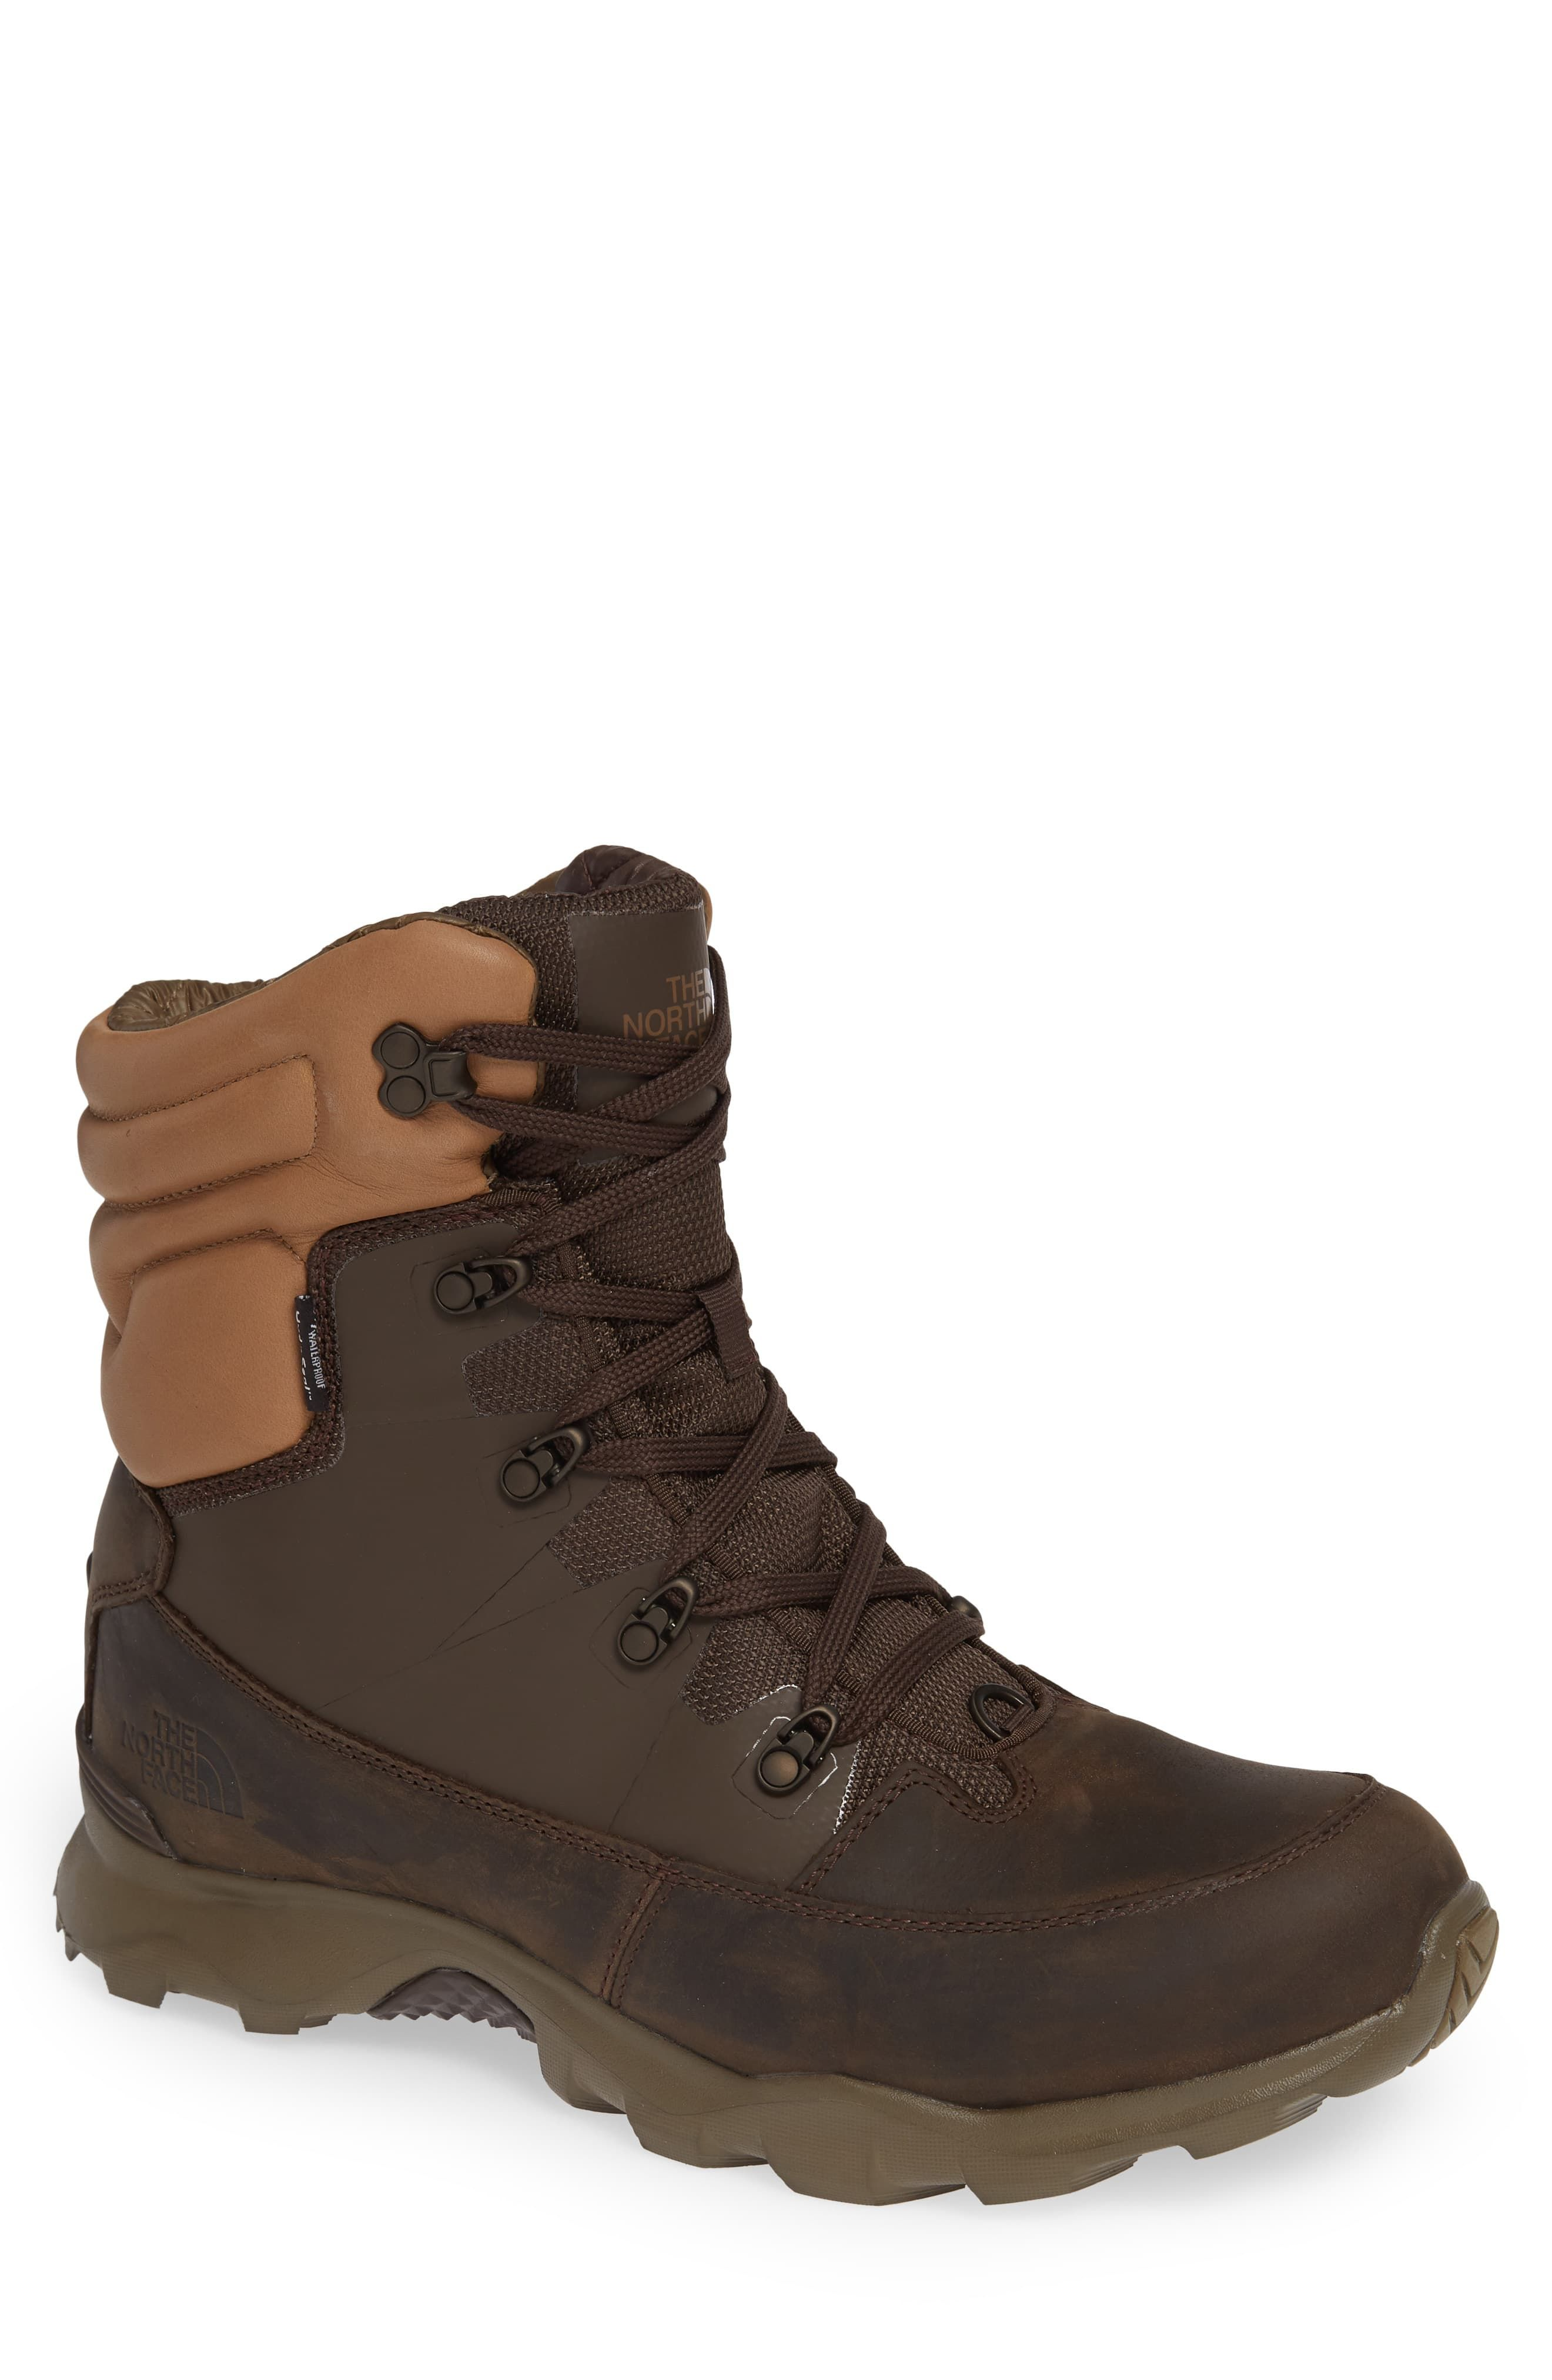 3645cebe8 Men's The North Face Thermoball Lifty Snow Waterproof Boot, Size ...